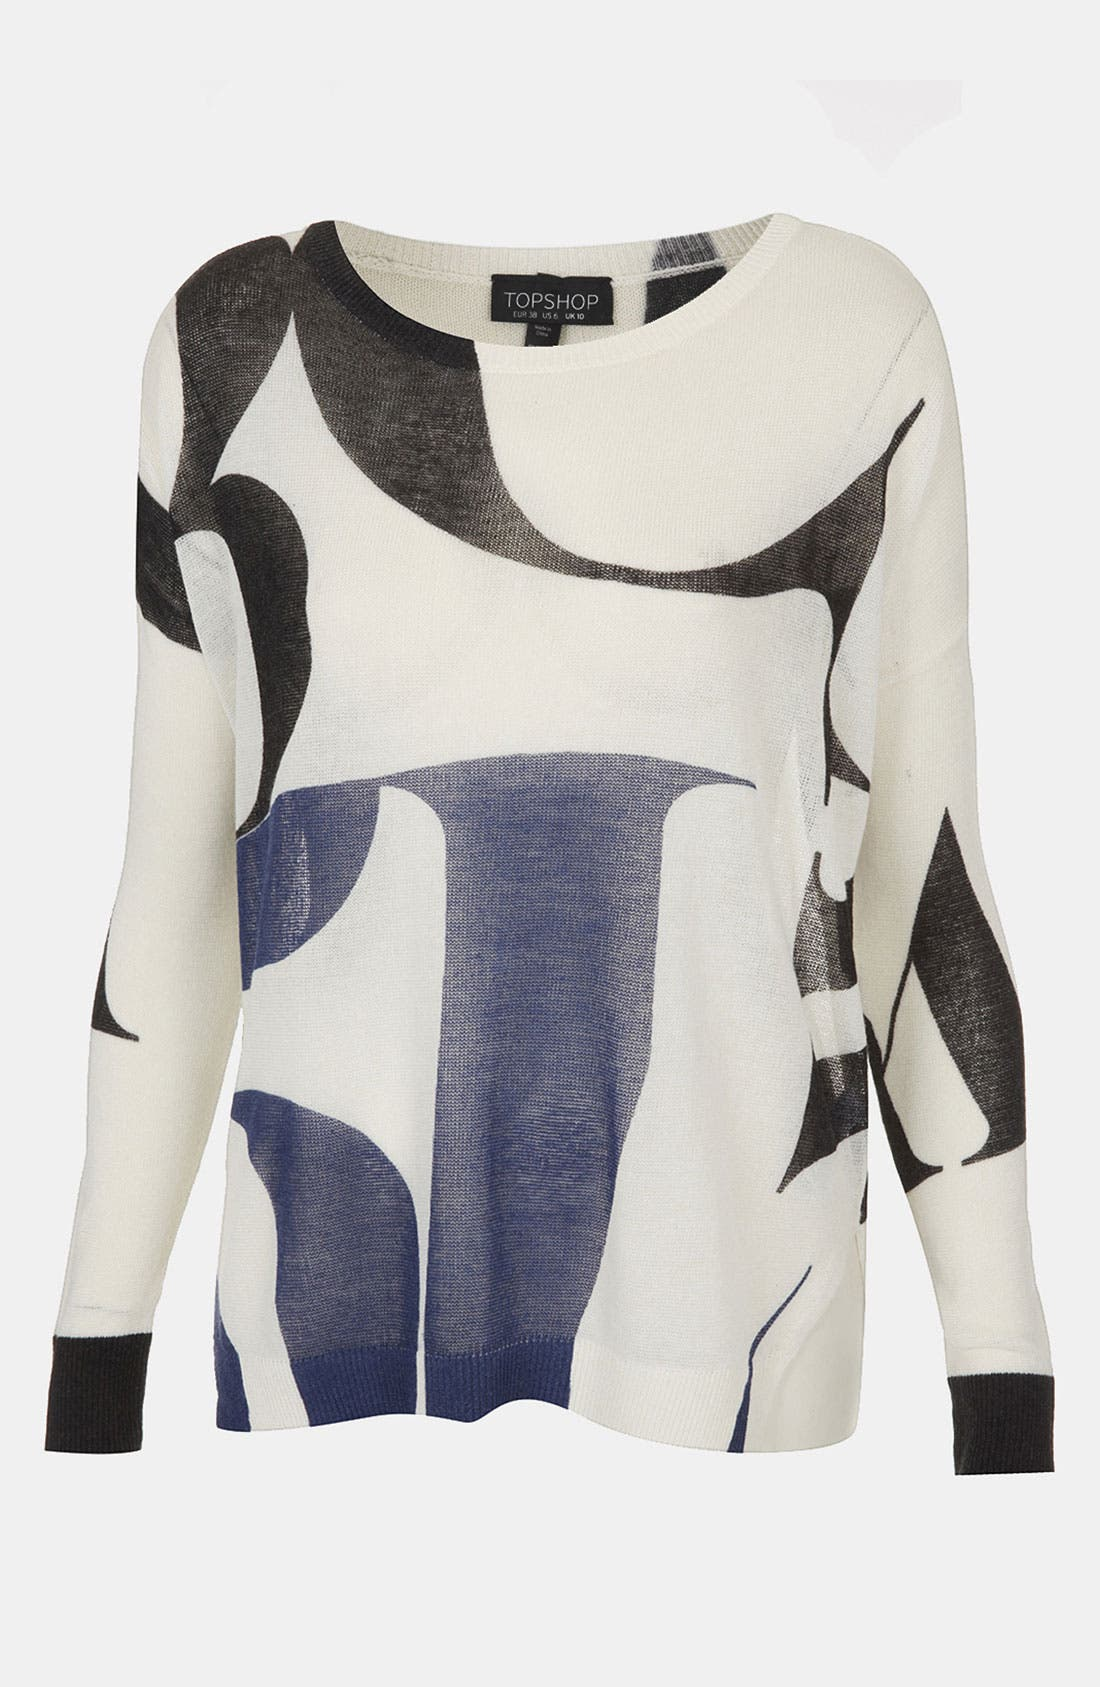 Main Image - Topshop 'Arthaus Letter' Print Sweater